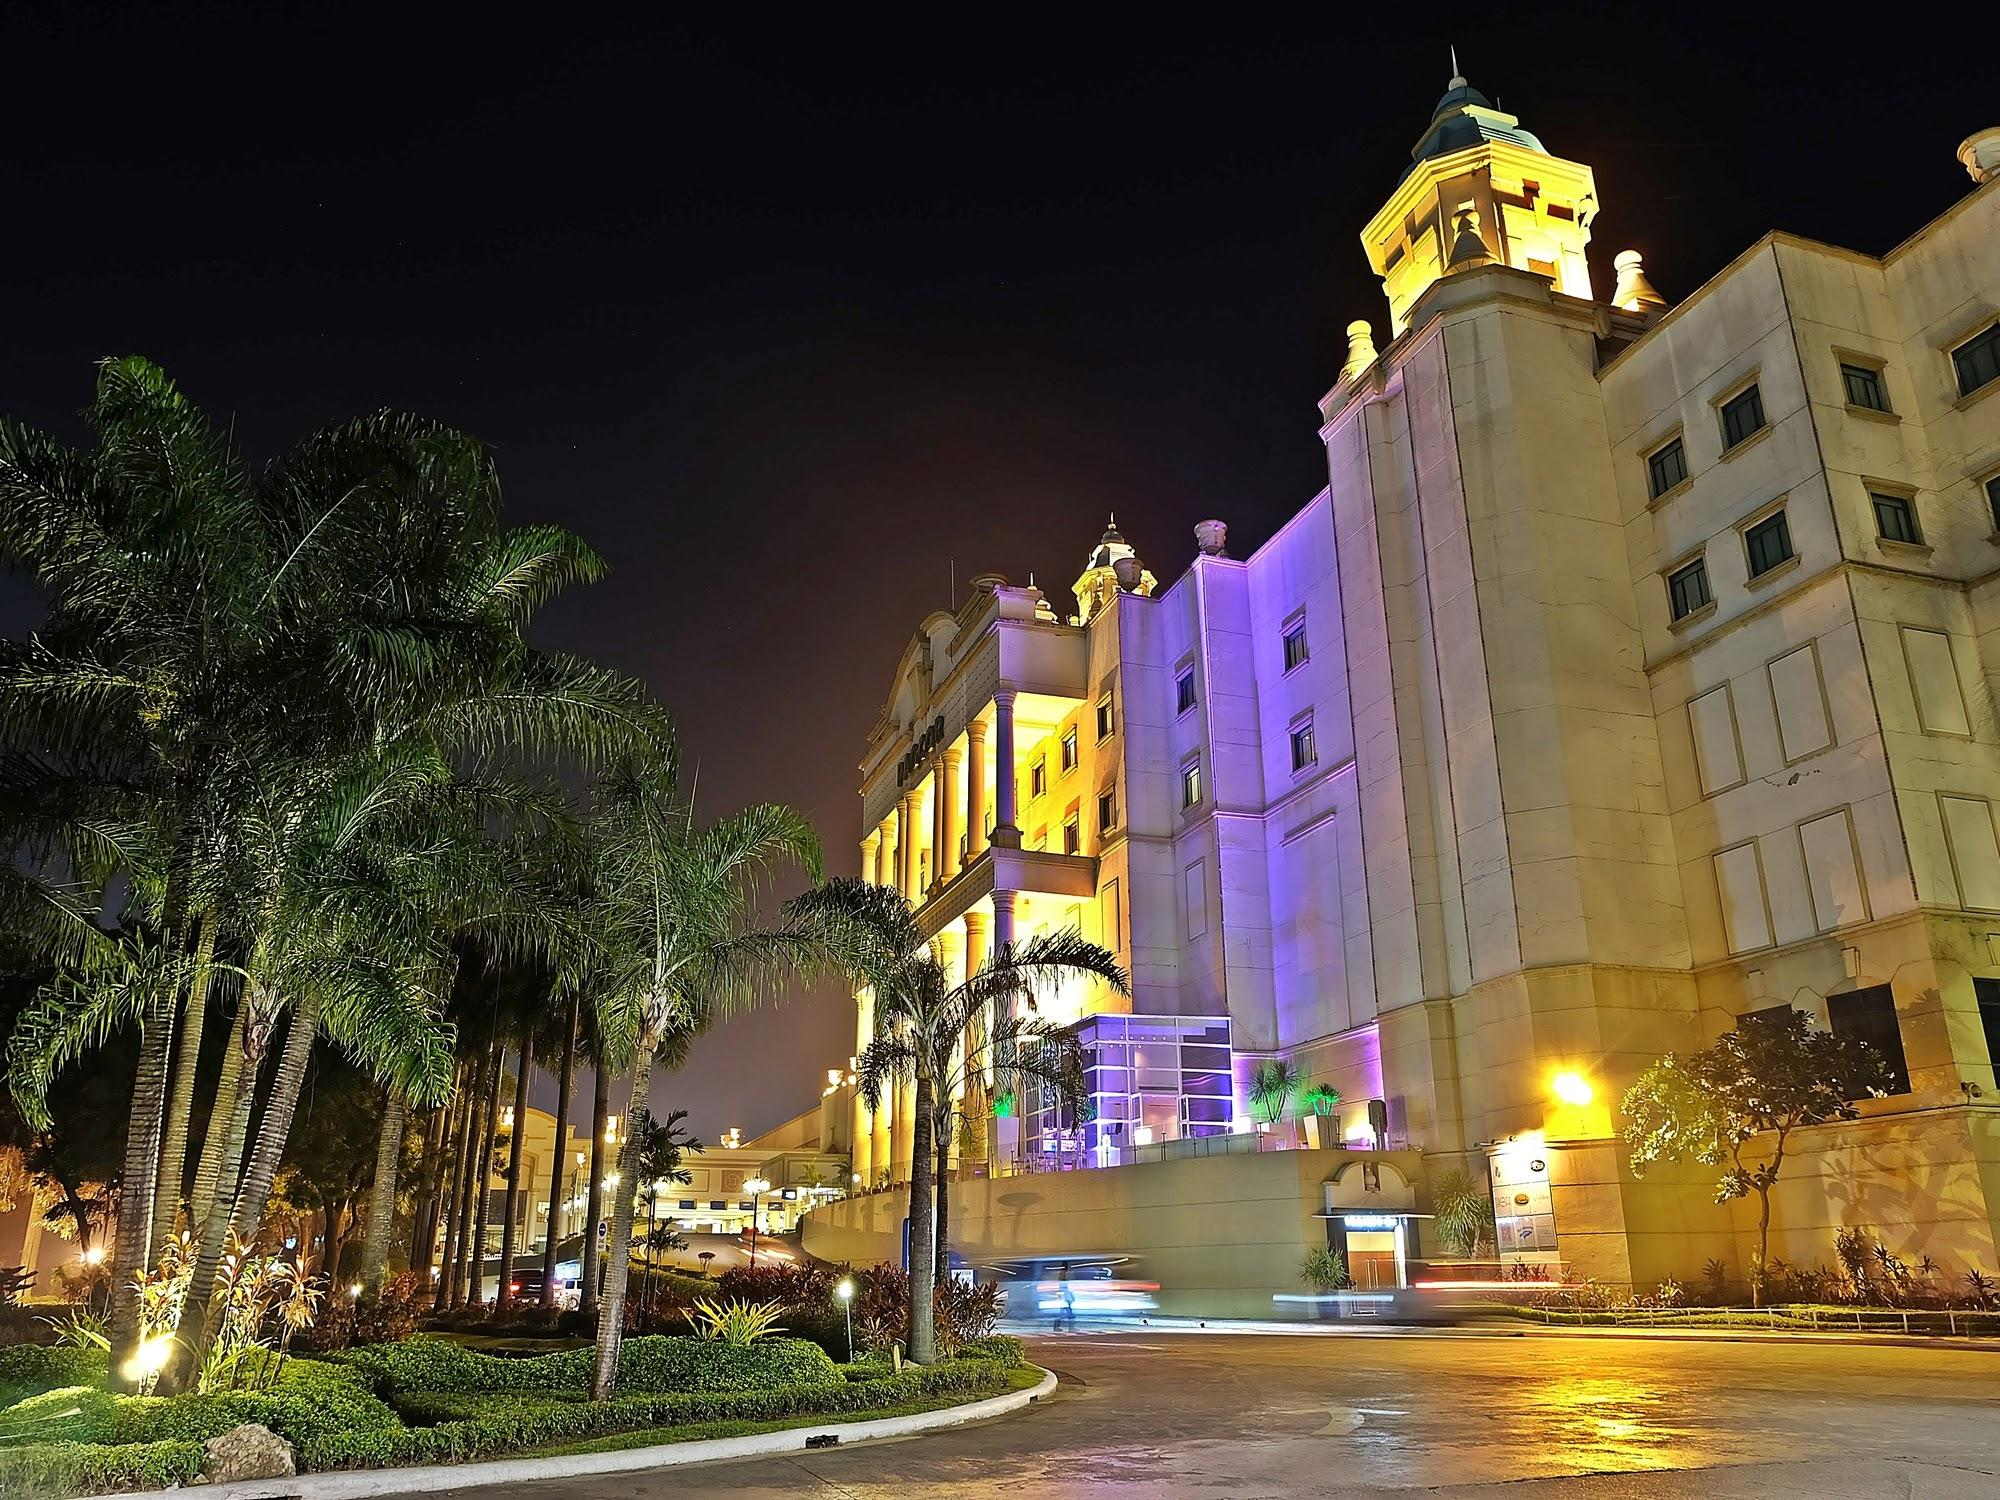 Waterfront Cebu City Hotel and Casino Cebu - Hotel Facade